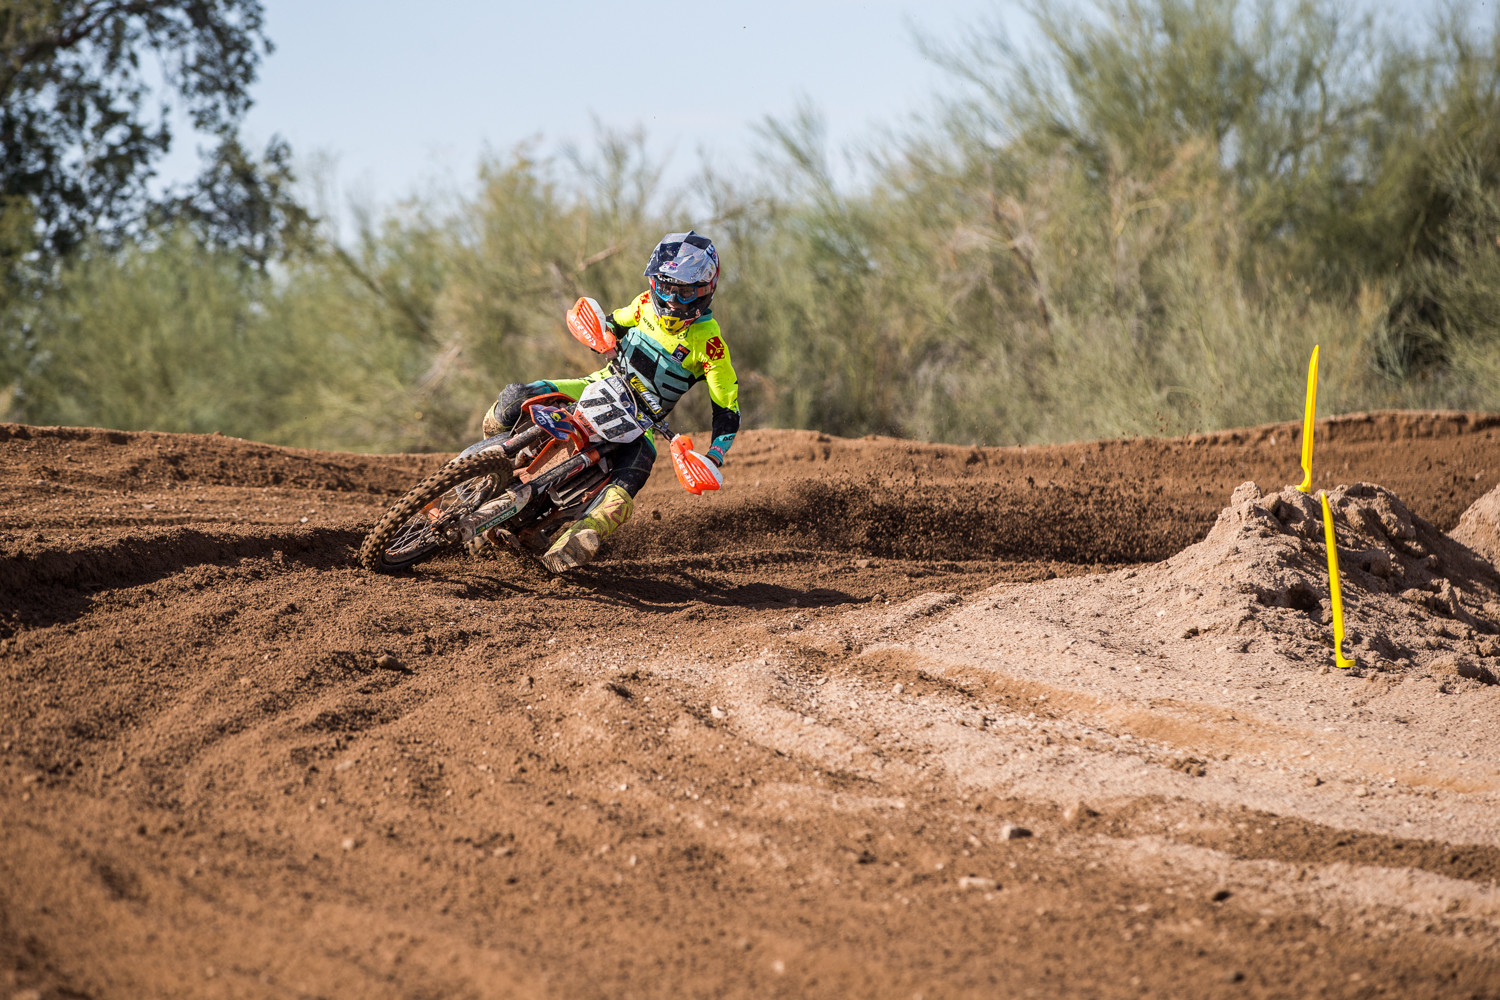 Max Vohland - Gallery: 2017 AMA Arizona Open Amateur National - Friday - Motocross Pictures - Vital MX